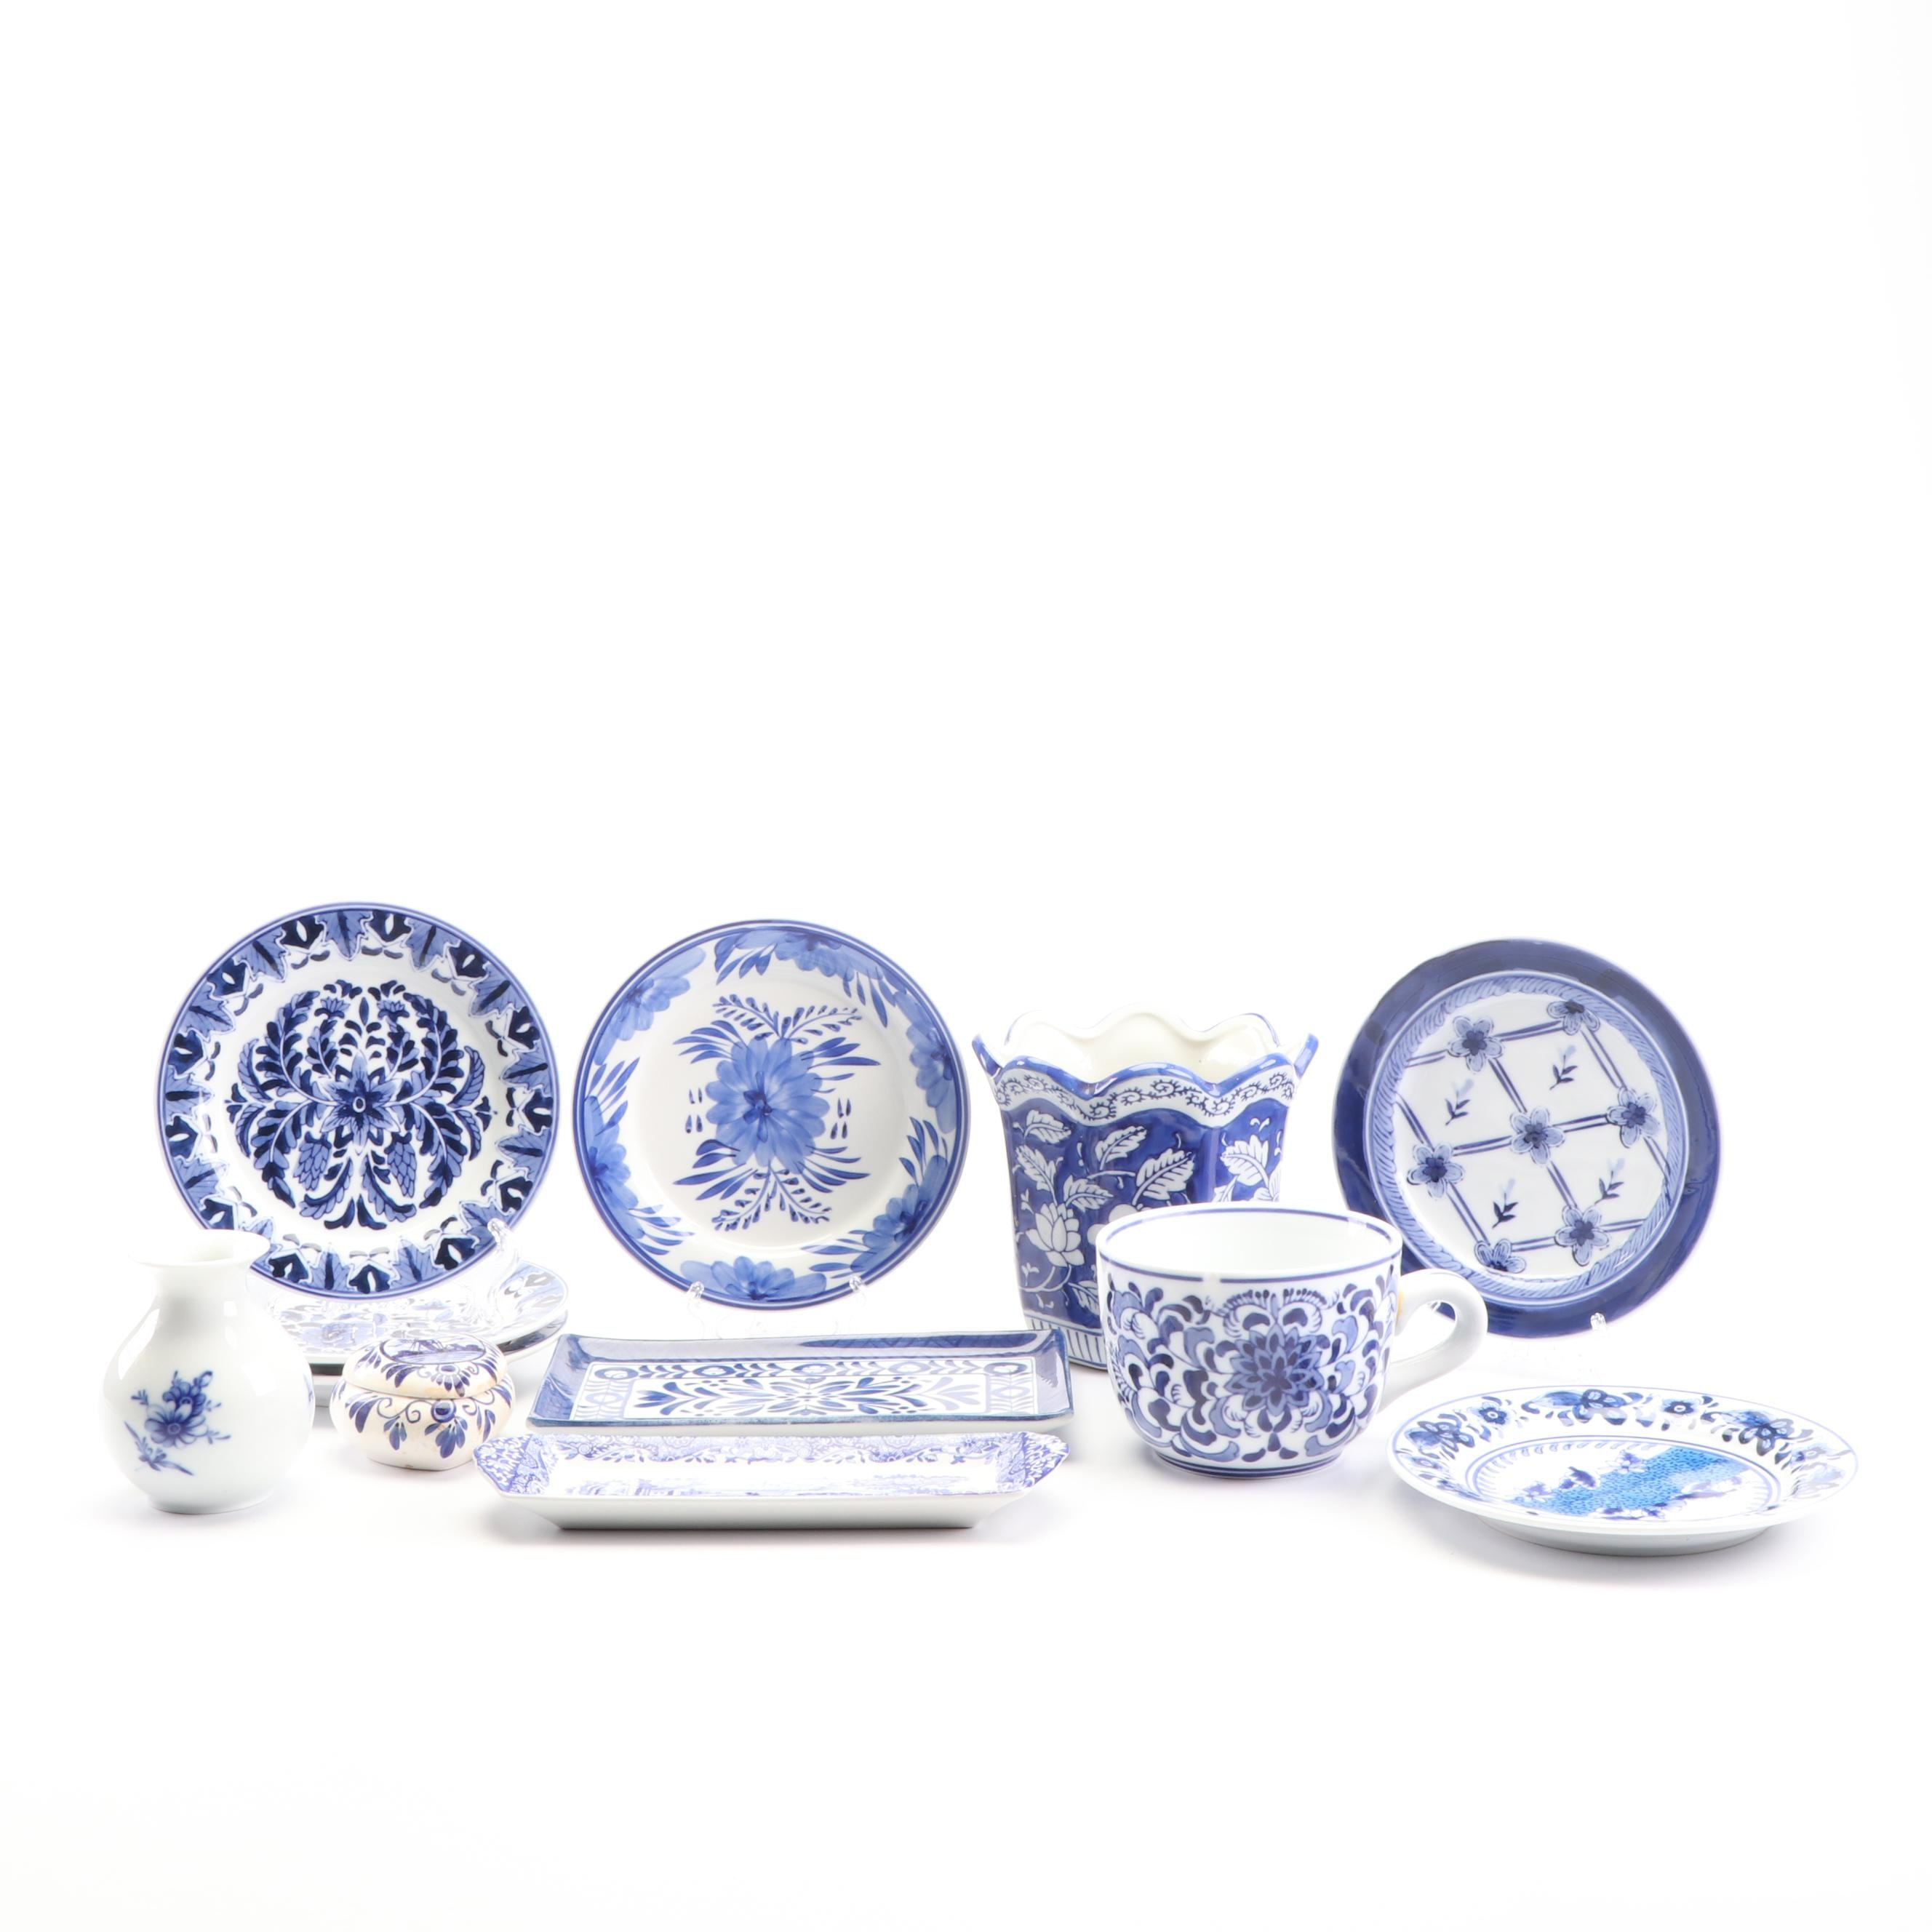 Blue and White Dinnerware with Trinket Box and Planter featuring Delft